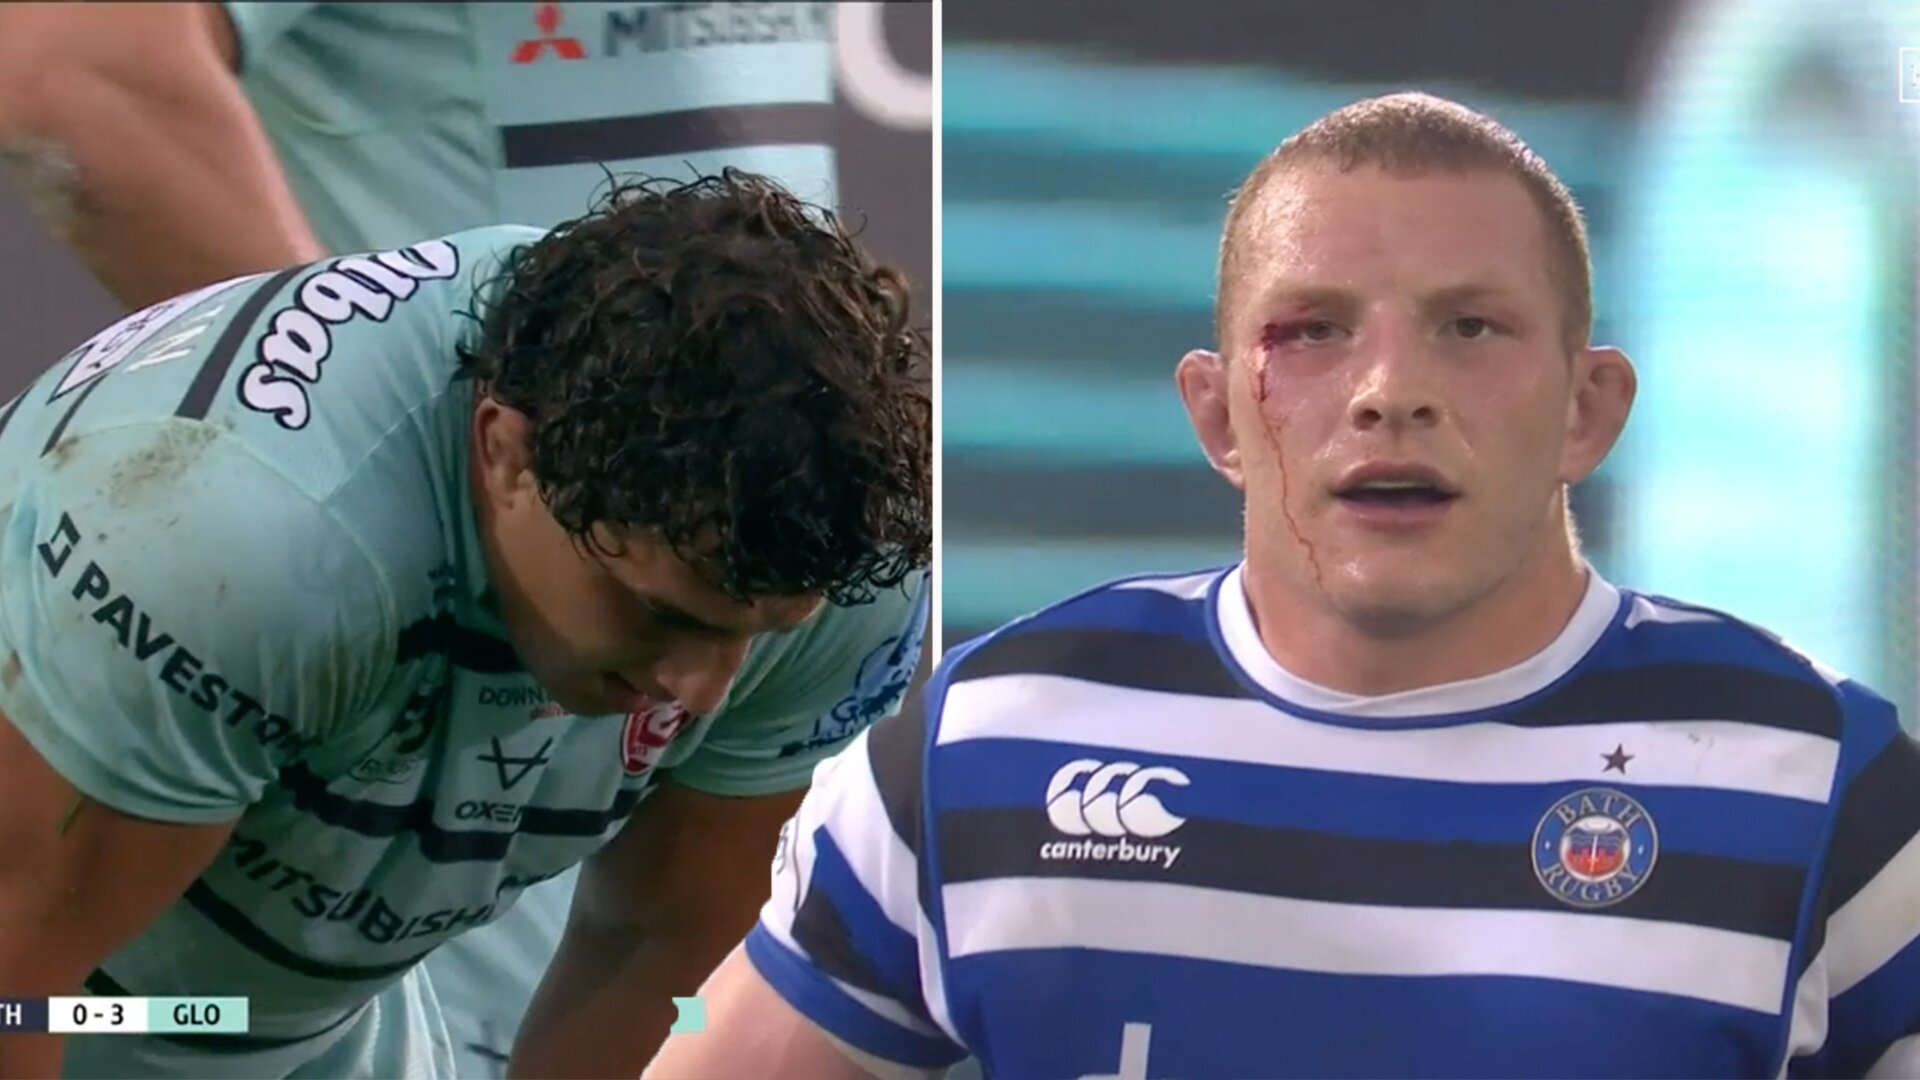 Sam Underhill nearly injures player with perfect legal war hit